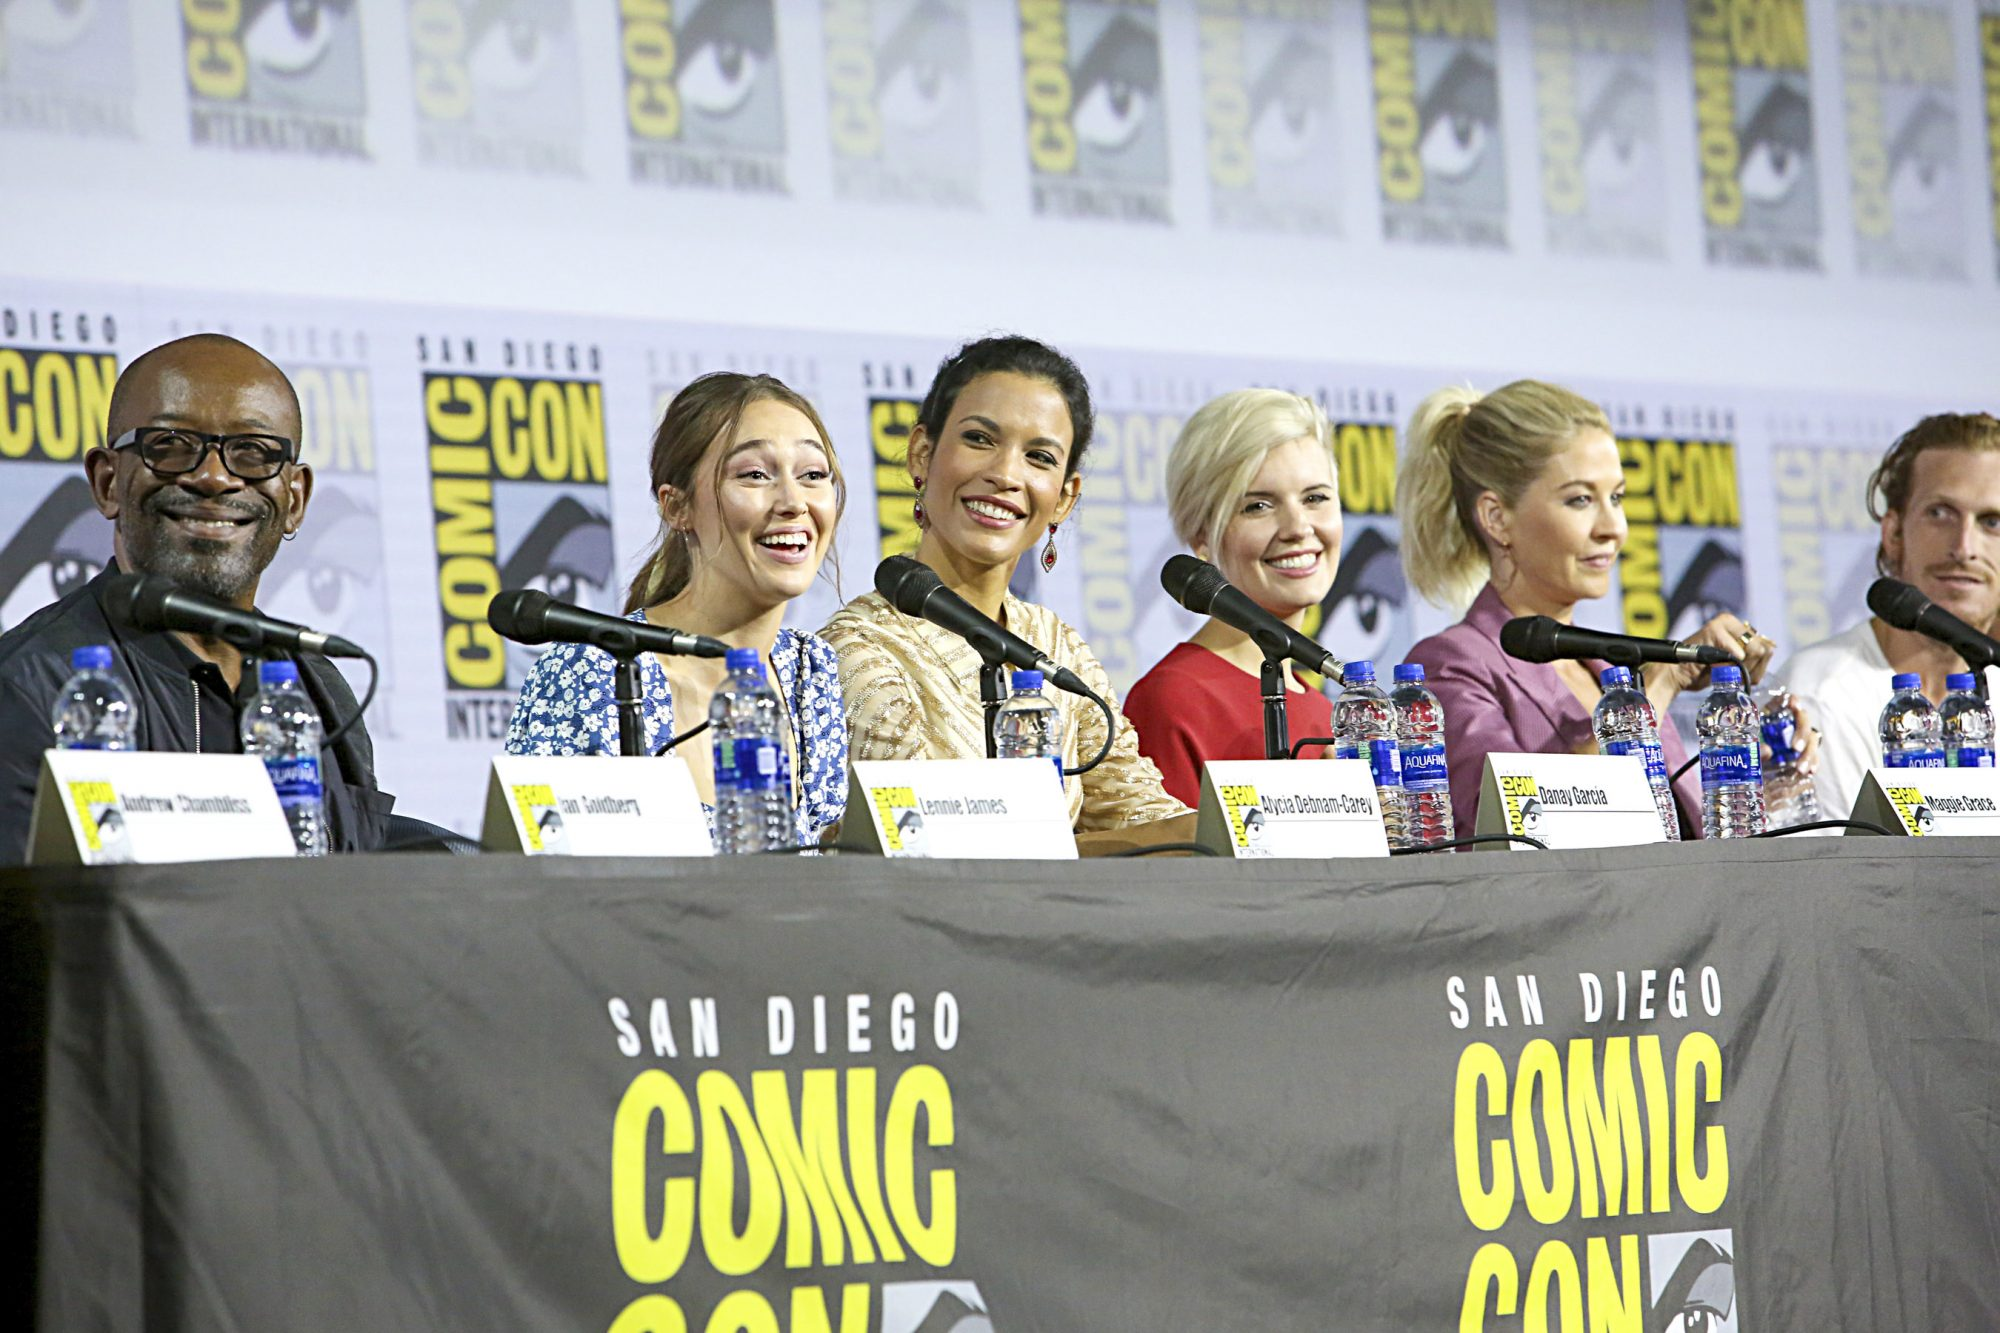 SAN DIEGO, CALIFORNIA - JULY 19: (L-R) Lennie James, Alycia Debnam-Carey, Danay Garcia, Maggie Grace, Jenna Elfman, and Austin Amelio attend the Fear the Walking Dead Panel at Comic Con 2019 on July 19, 2019 in San Diego, California. (Photo by Jesse Grant/Getty Images for AMC)